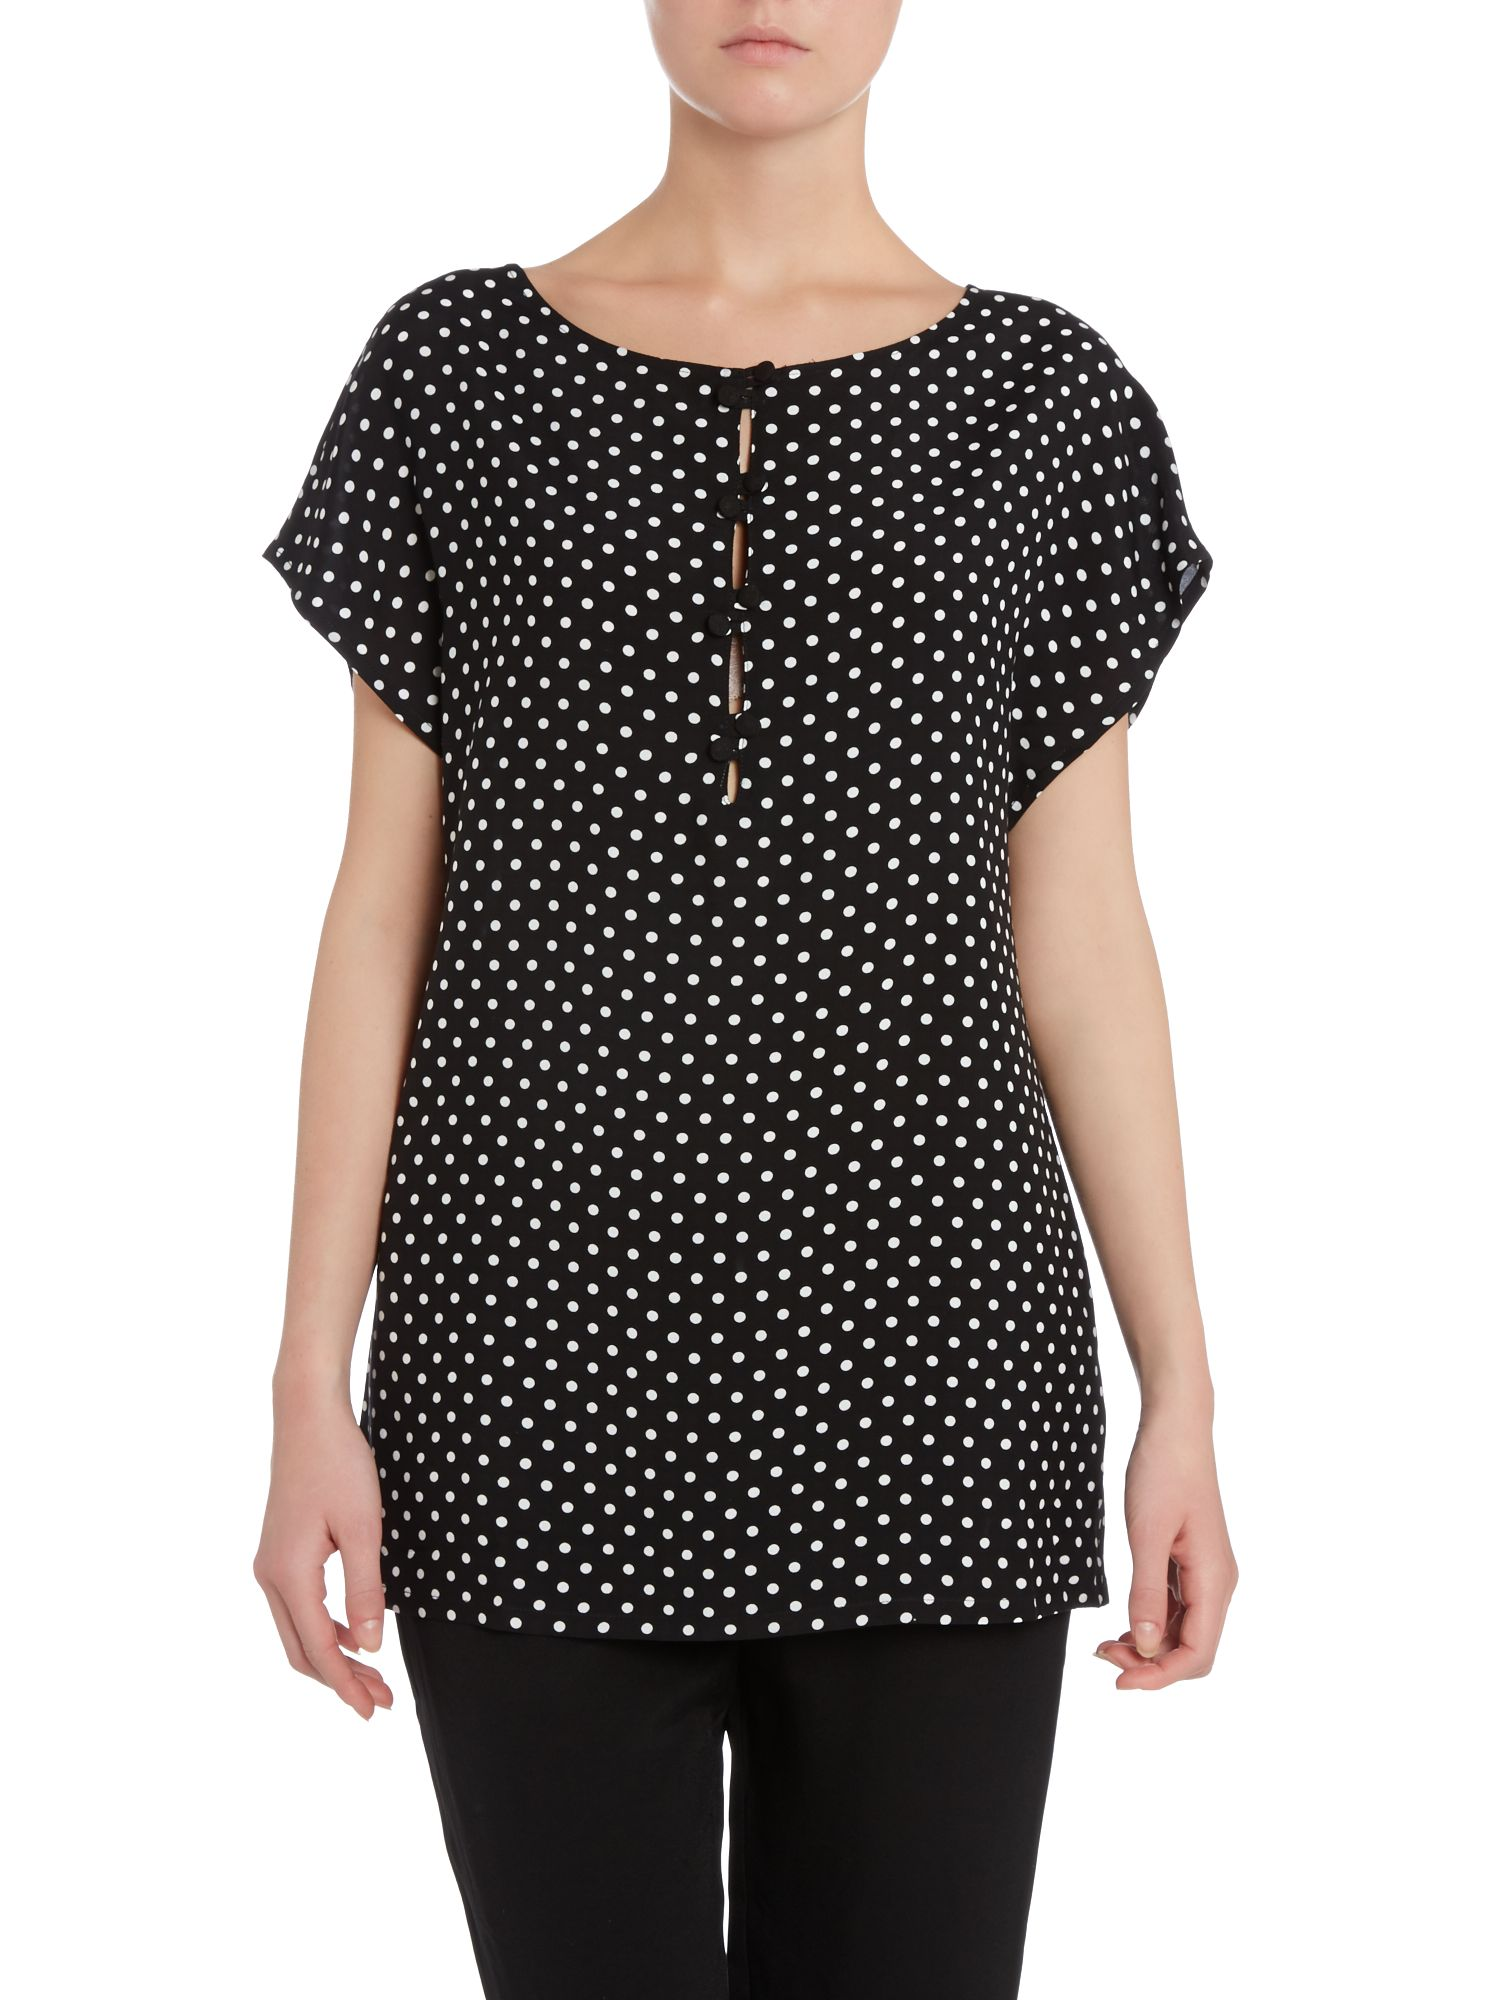 Polka dot button front blouse